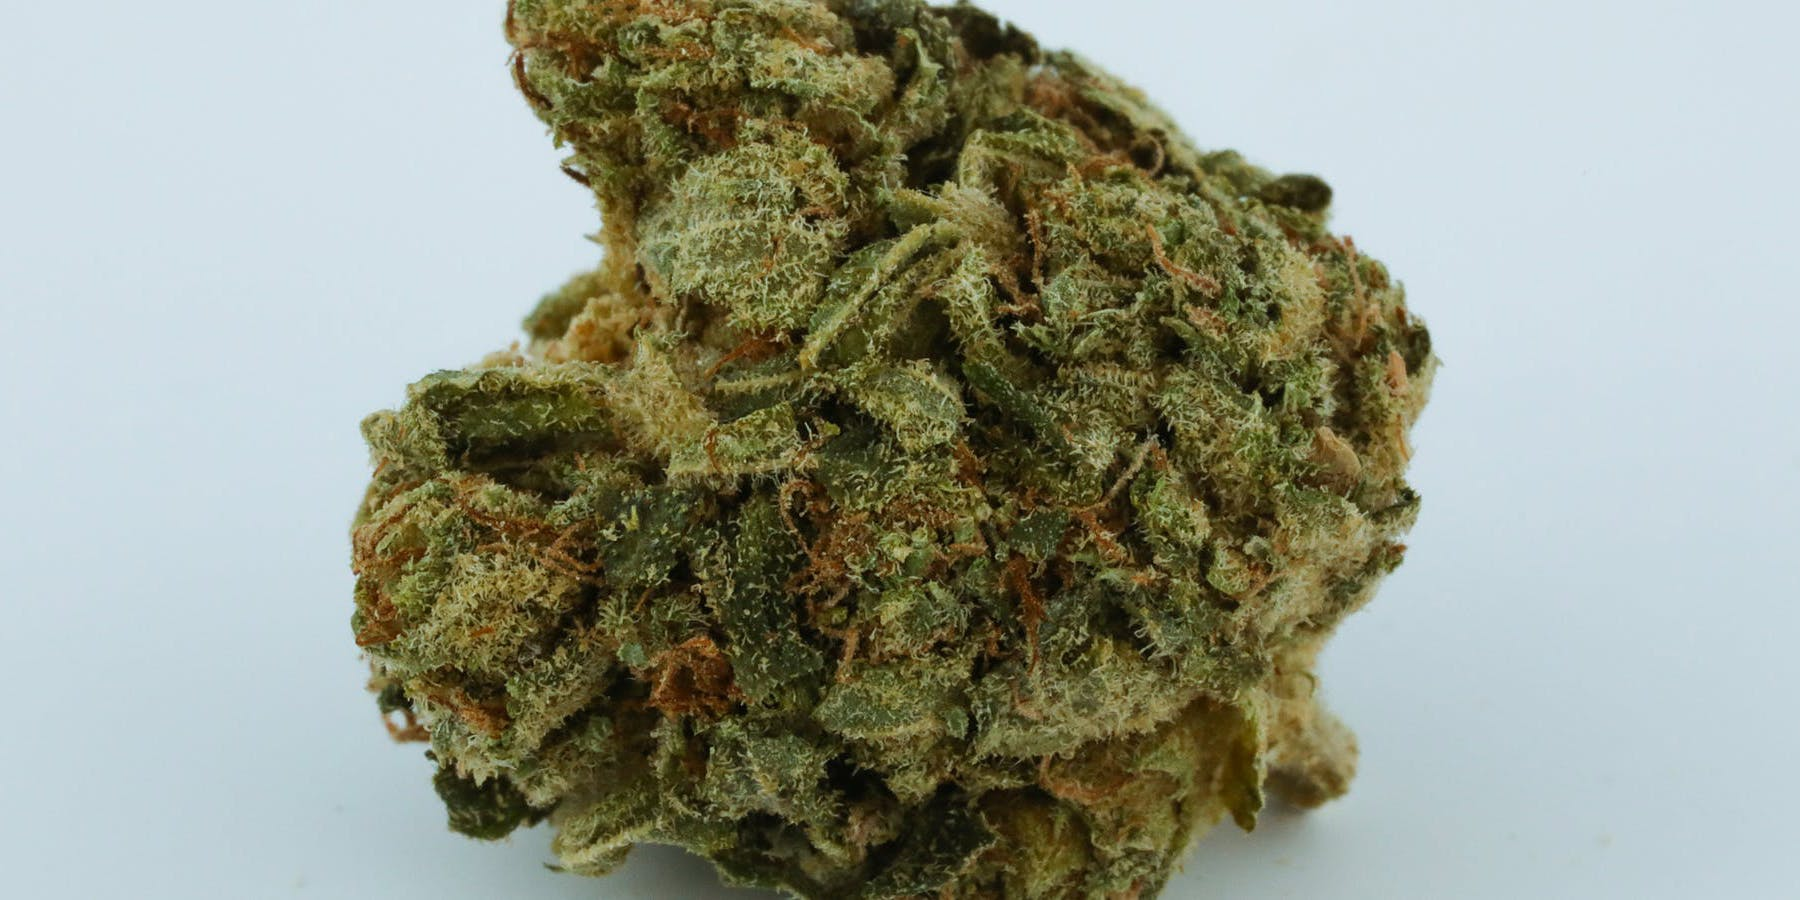 Juicy Fruit Weed; Juicy Fruit Cannabis Strain; Juicy Fruit Hybrid Marijuana Strain